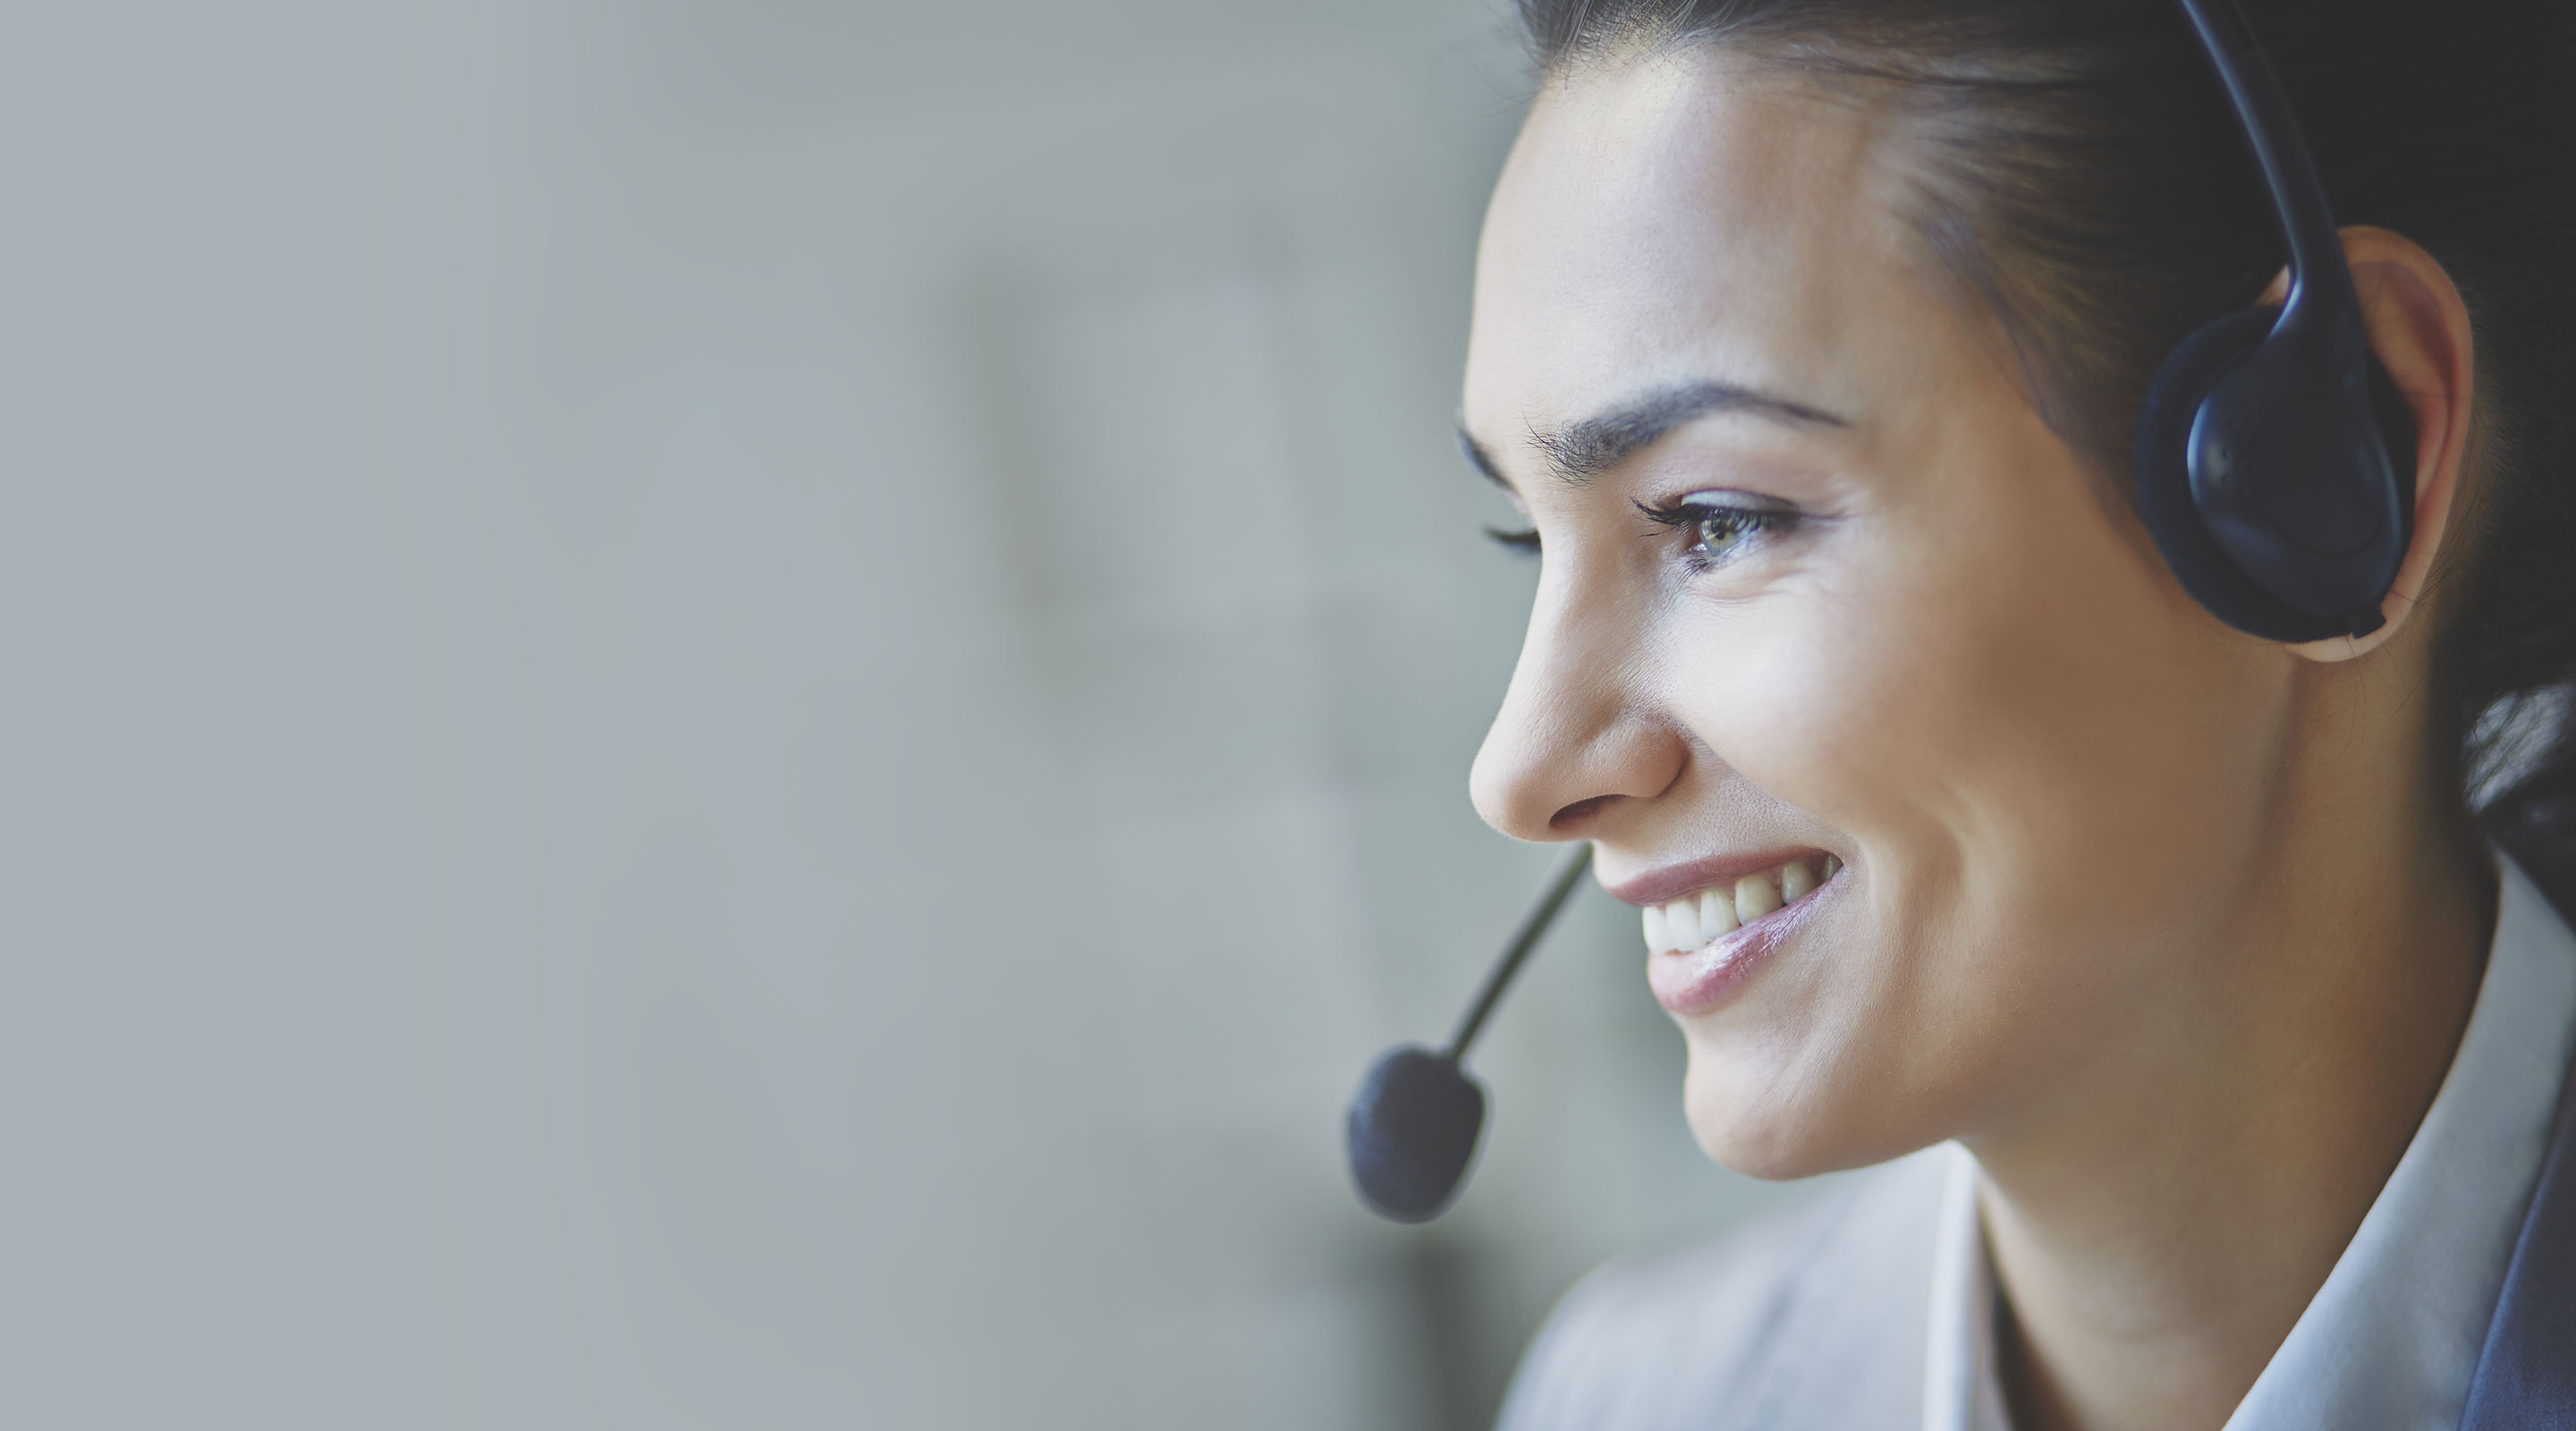 Smiling professional woman taking over a headset